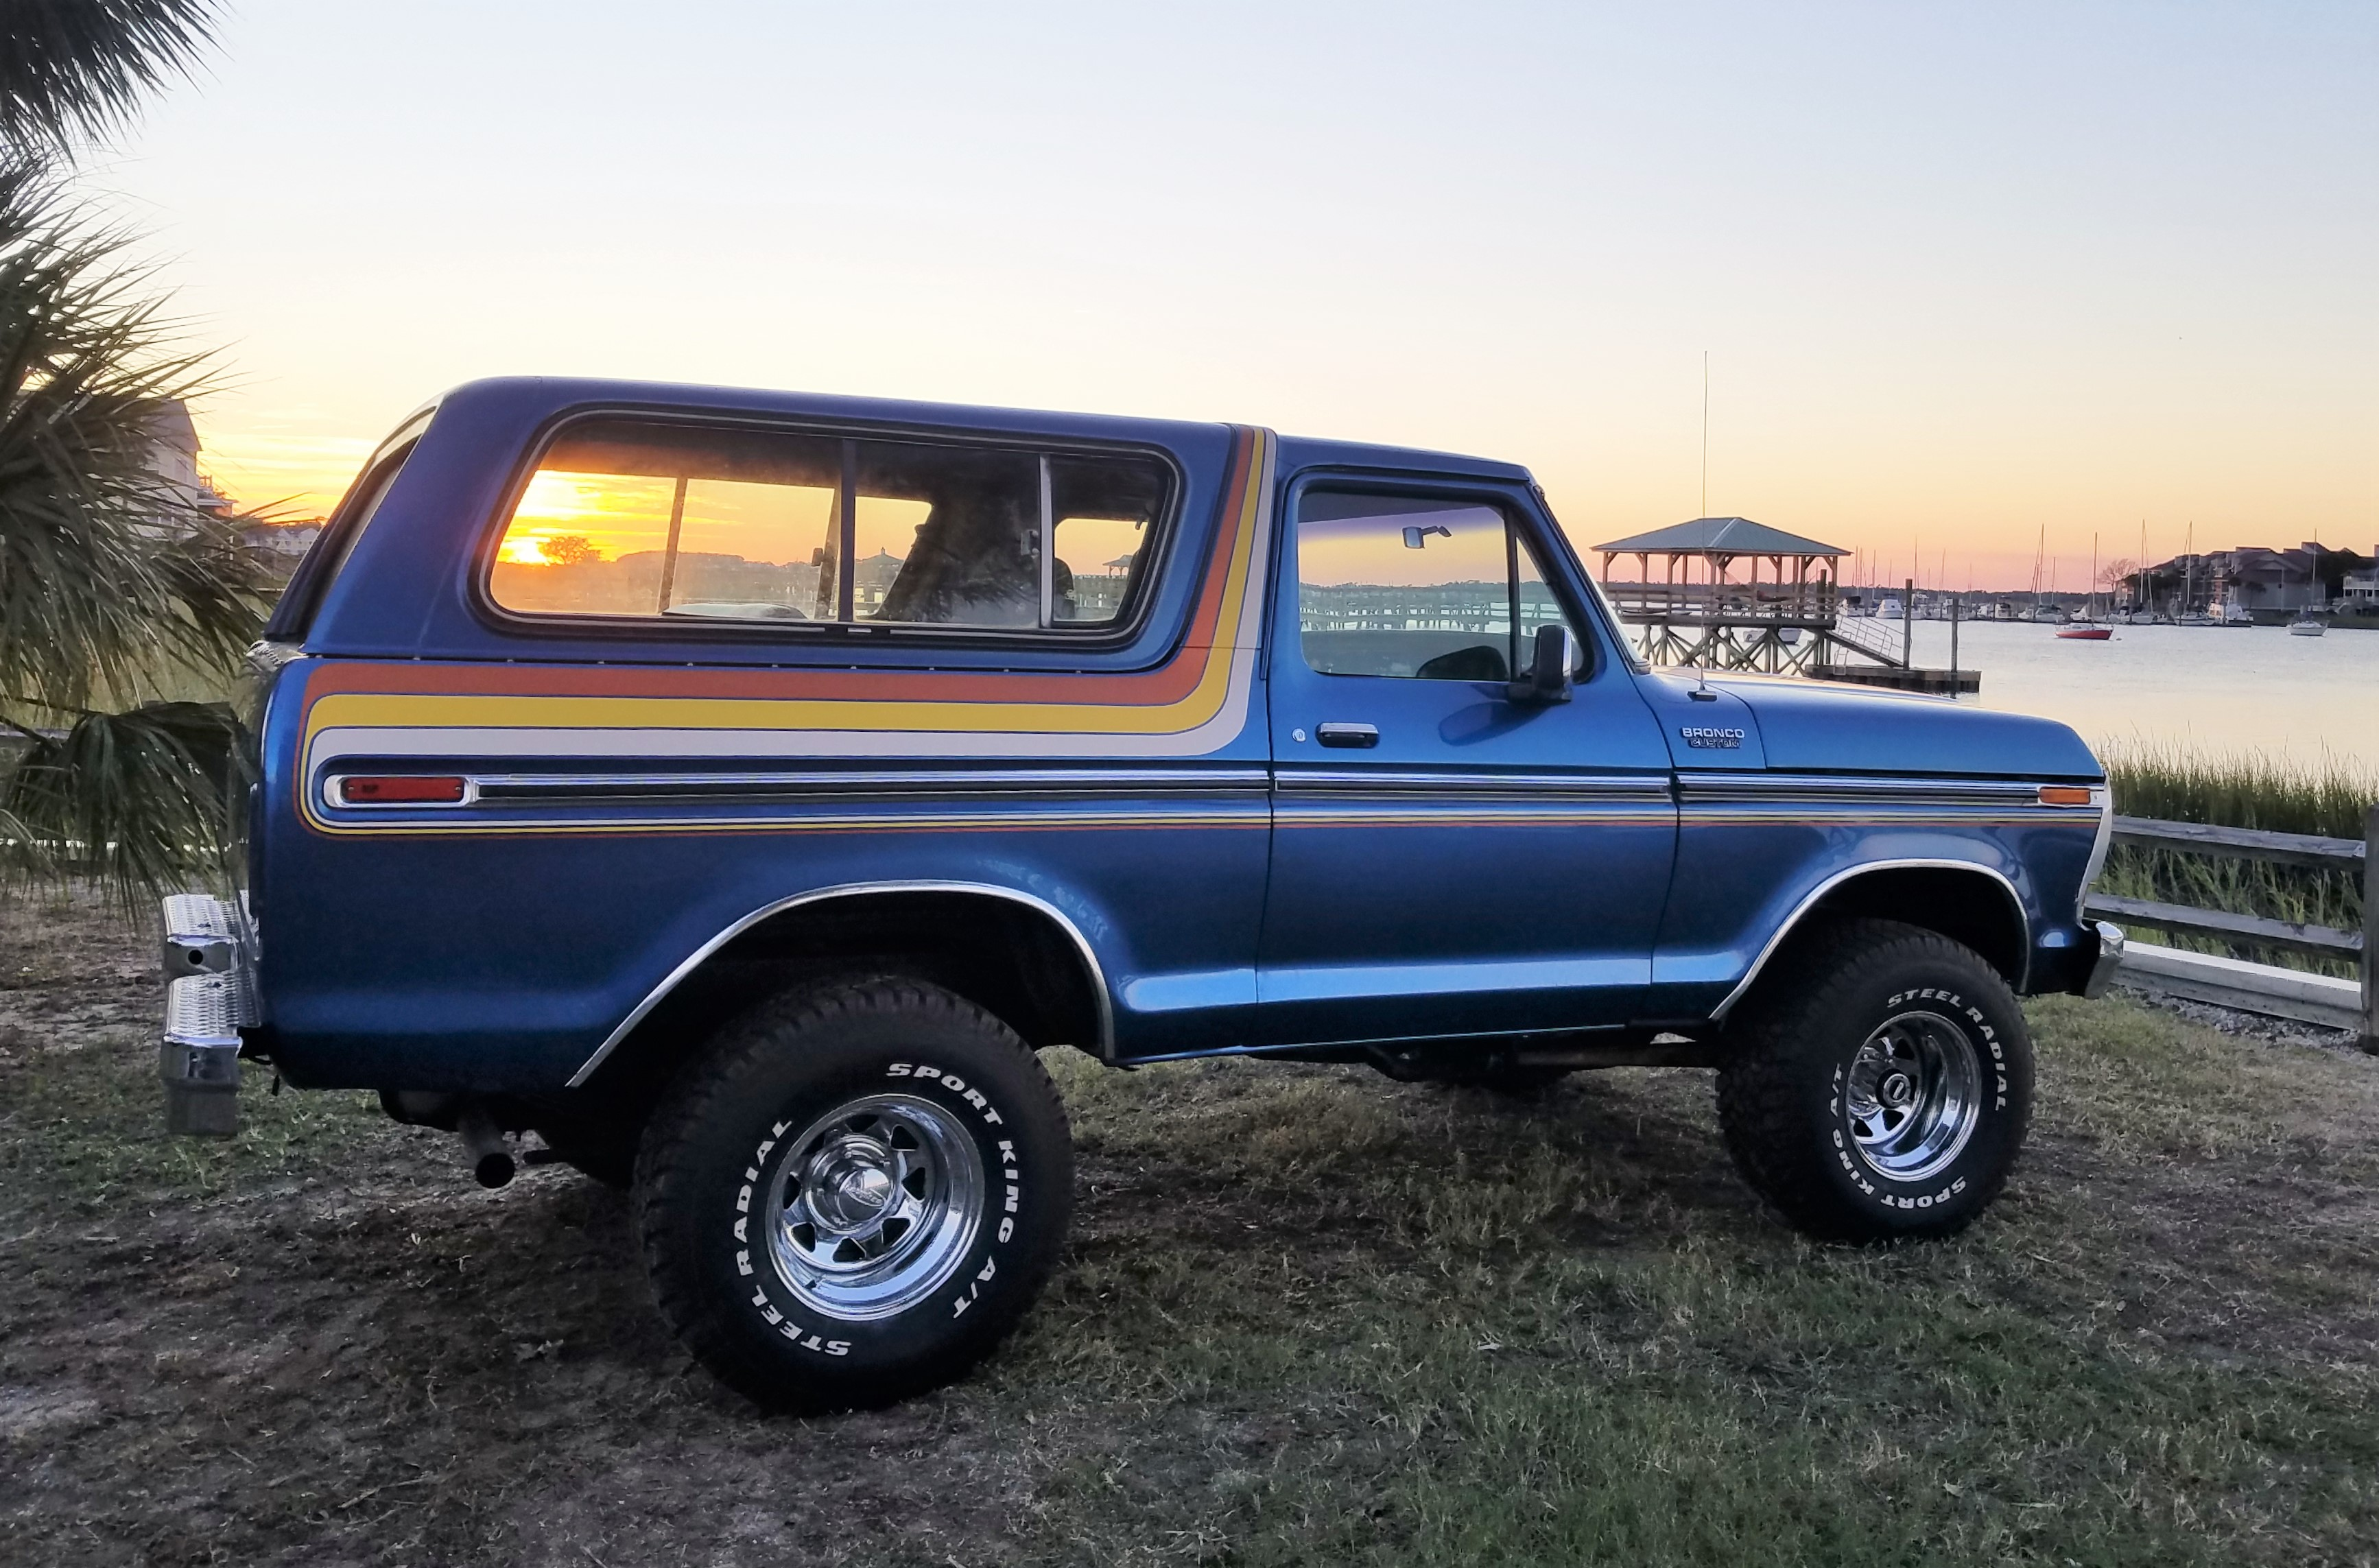 Project Road Warrior 2 0 Building A 1978 Bronco To Tackle